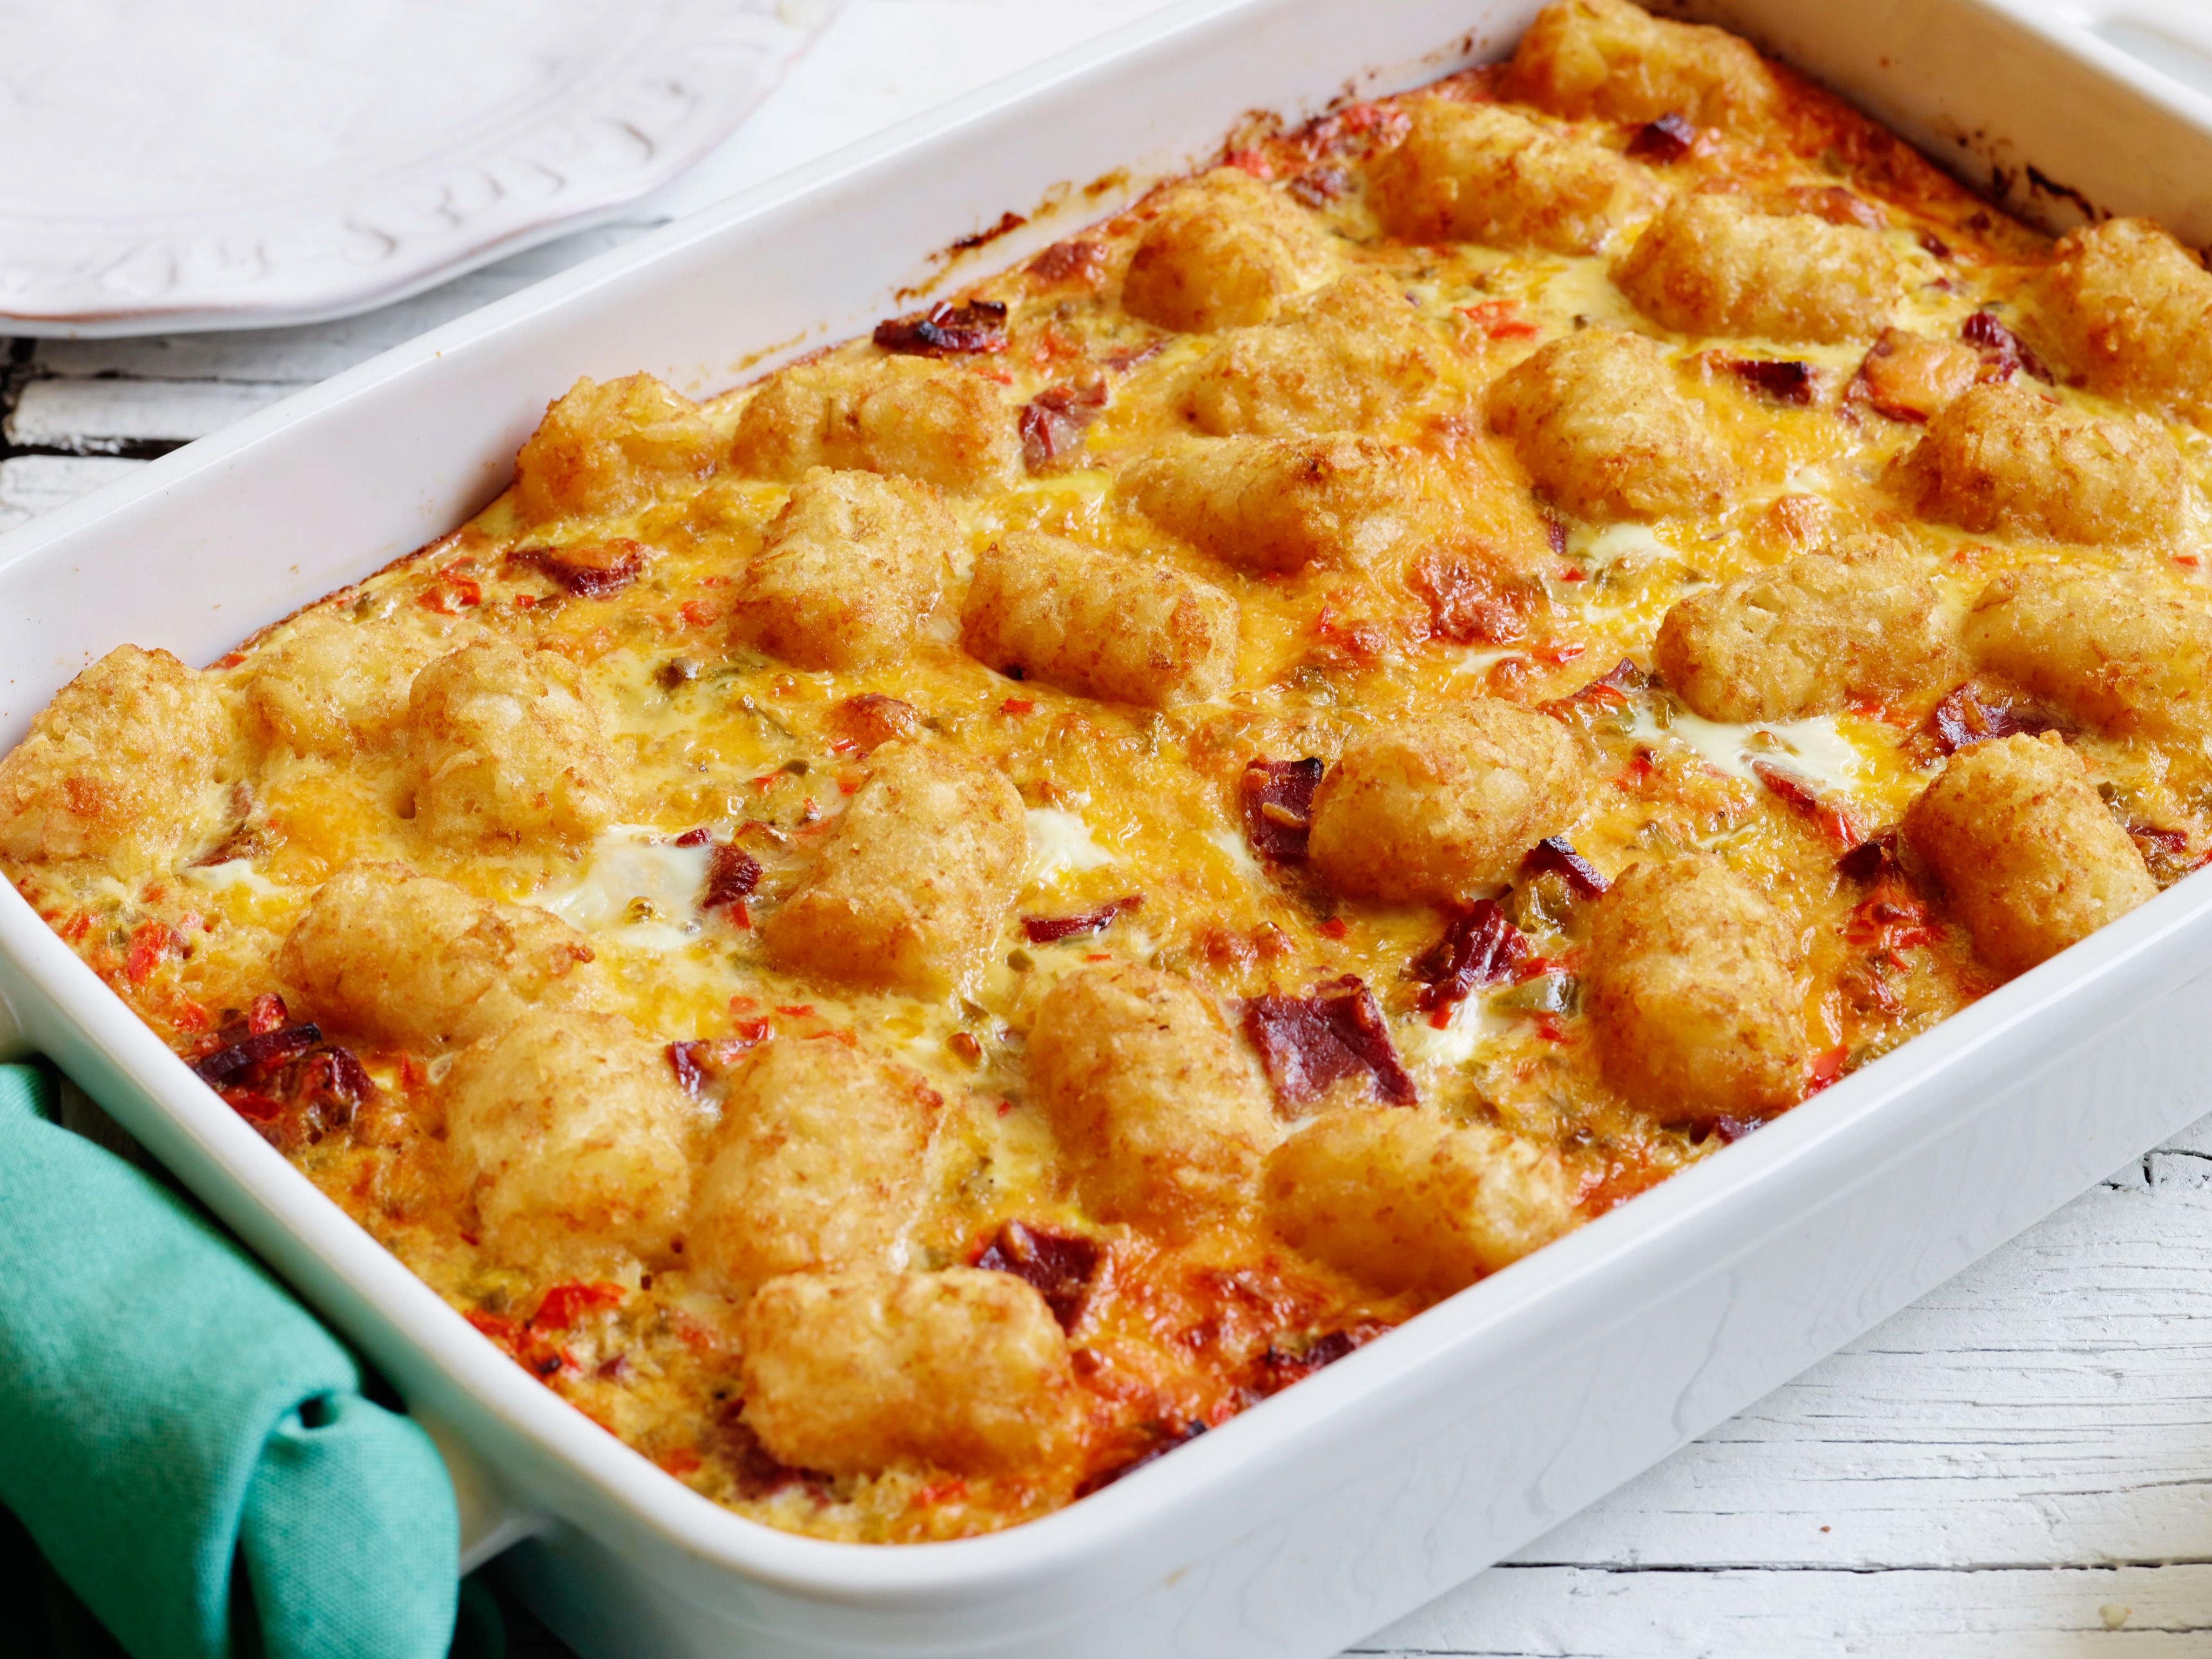 Christmas breakfast casseroles food network beef hash hash corned beef hash brown casserole recipe from food network kitchen forumfinder Image collections